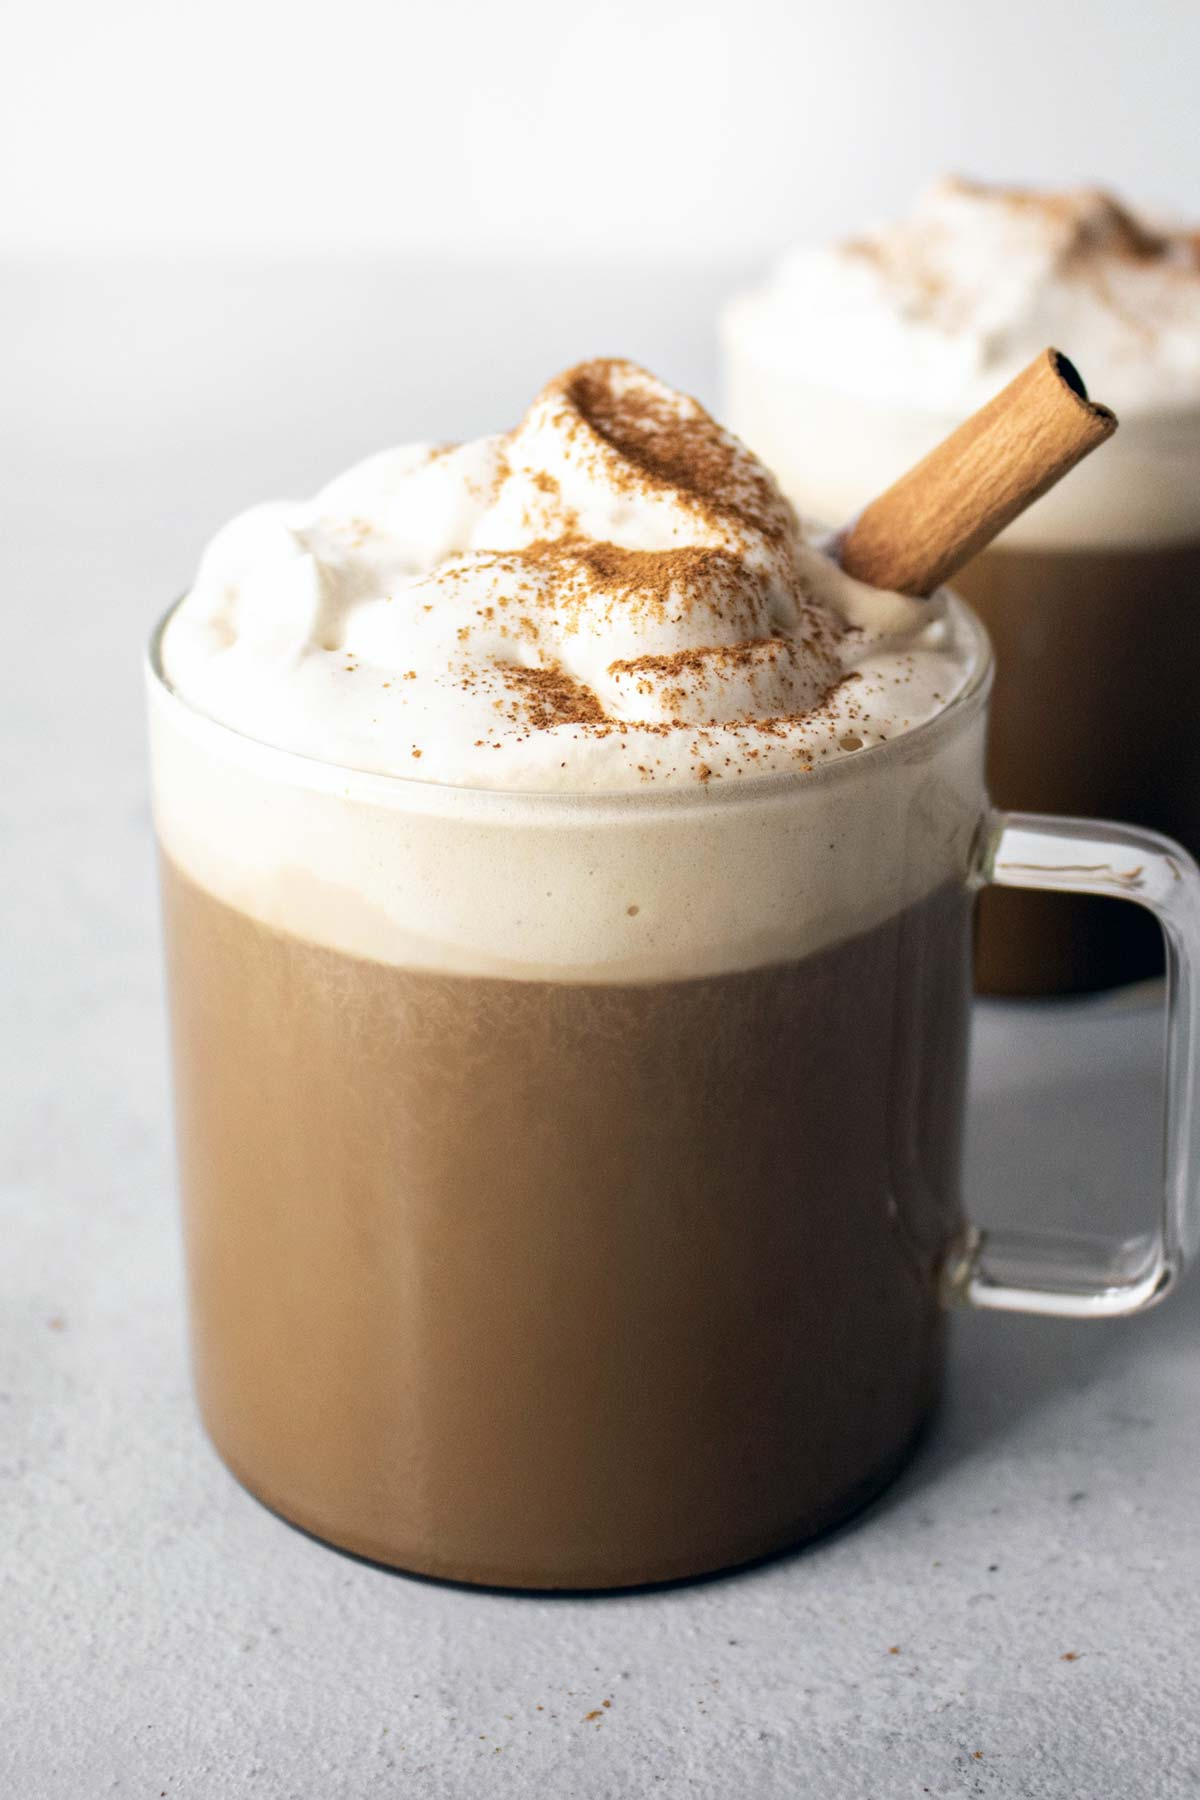 Pumpkin spice latte in mugs with whipped cream and cinnamon stick garnish.